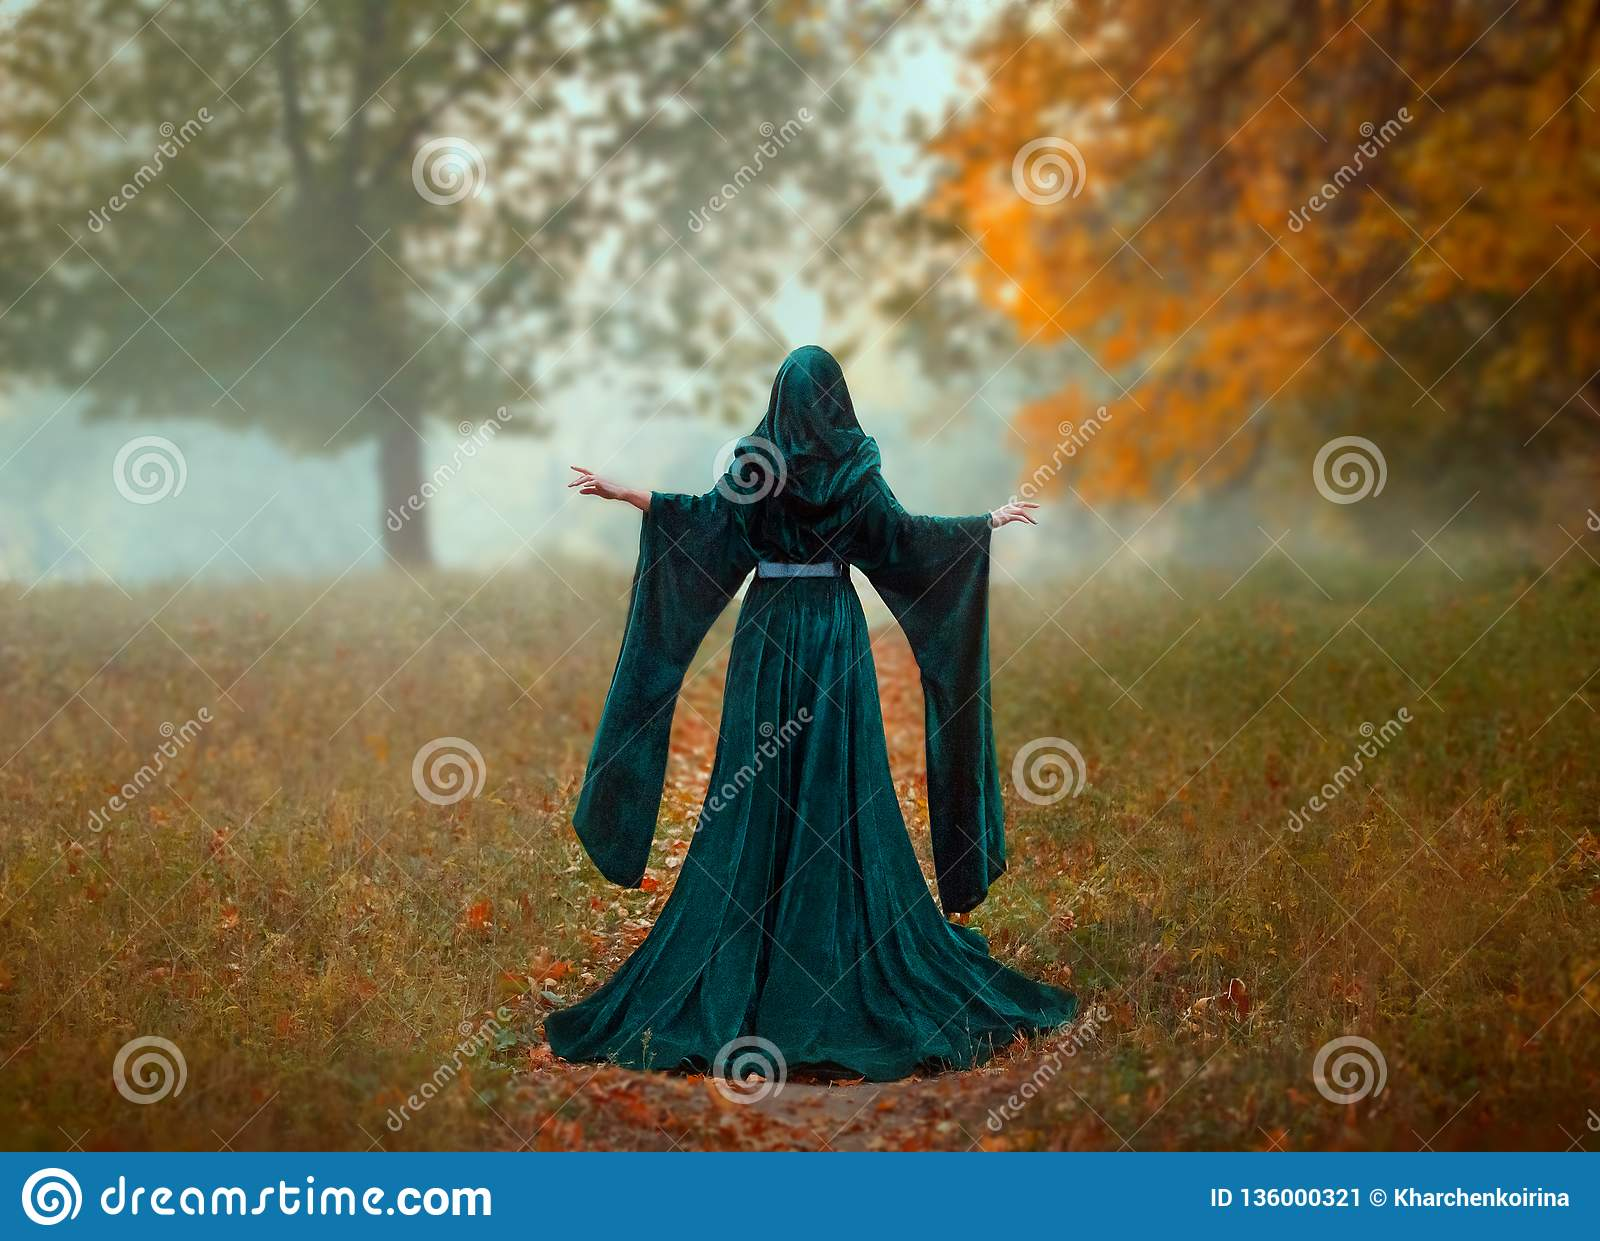 Young priestess holds a secret rite of sacrifice, is alone in the autumn forest on a large glade with fallen orange